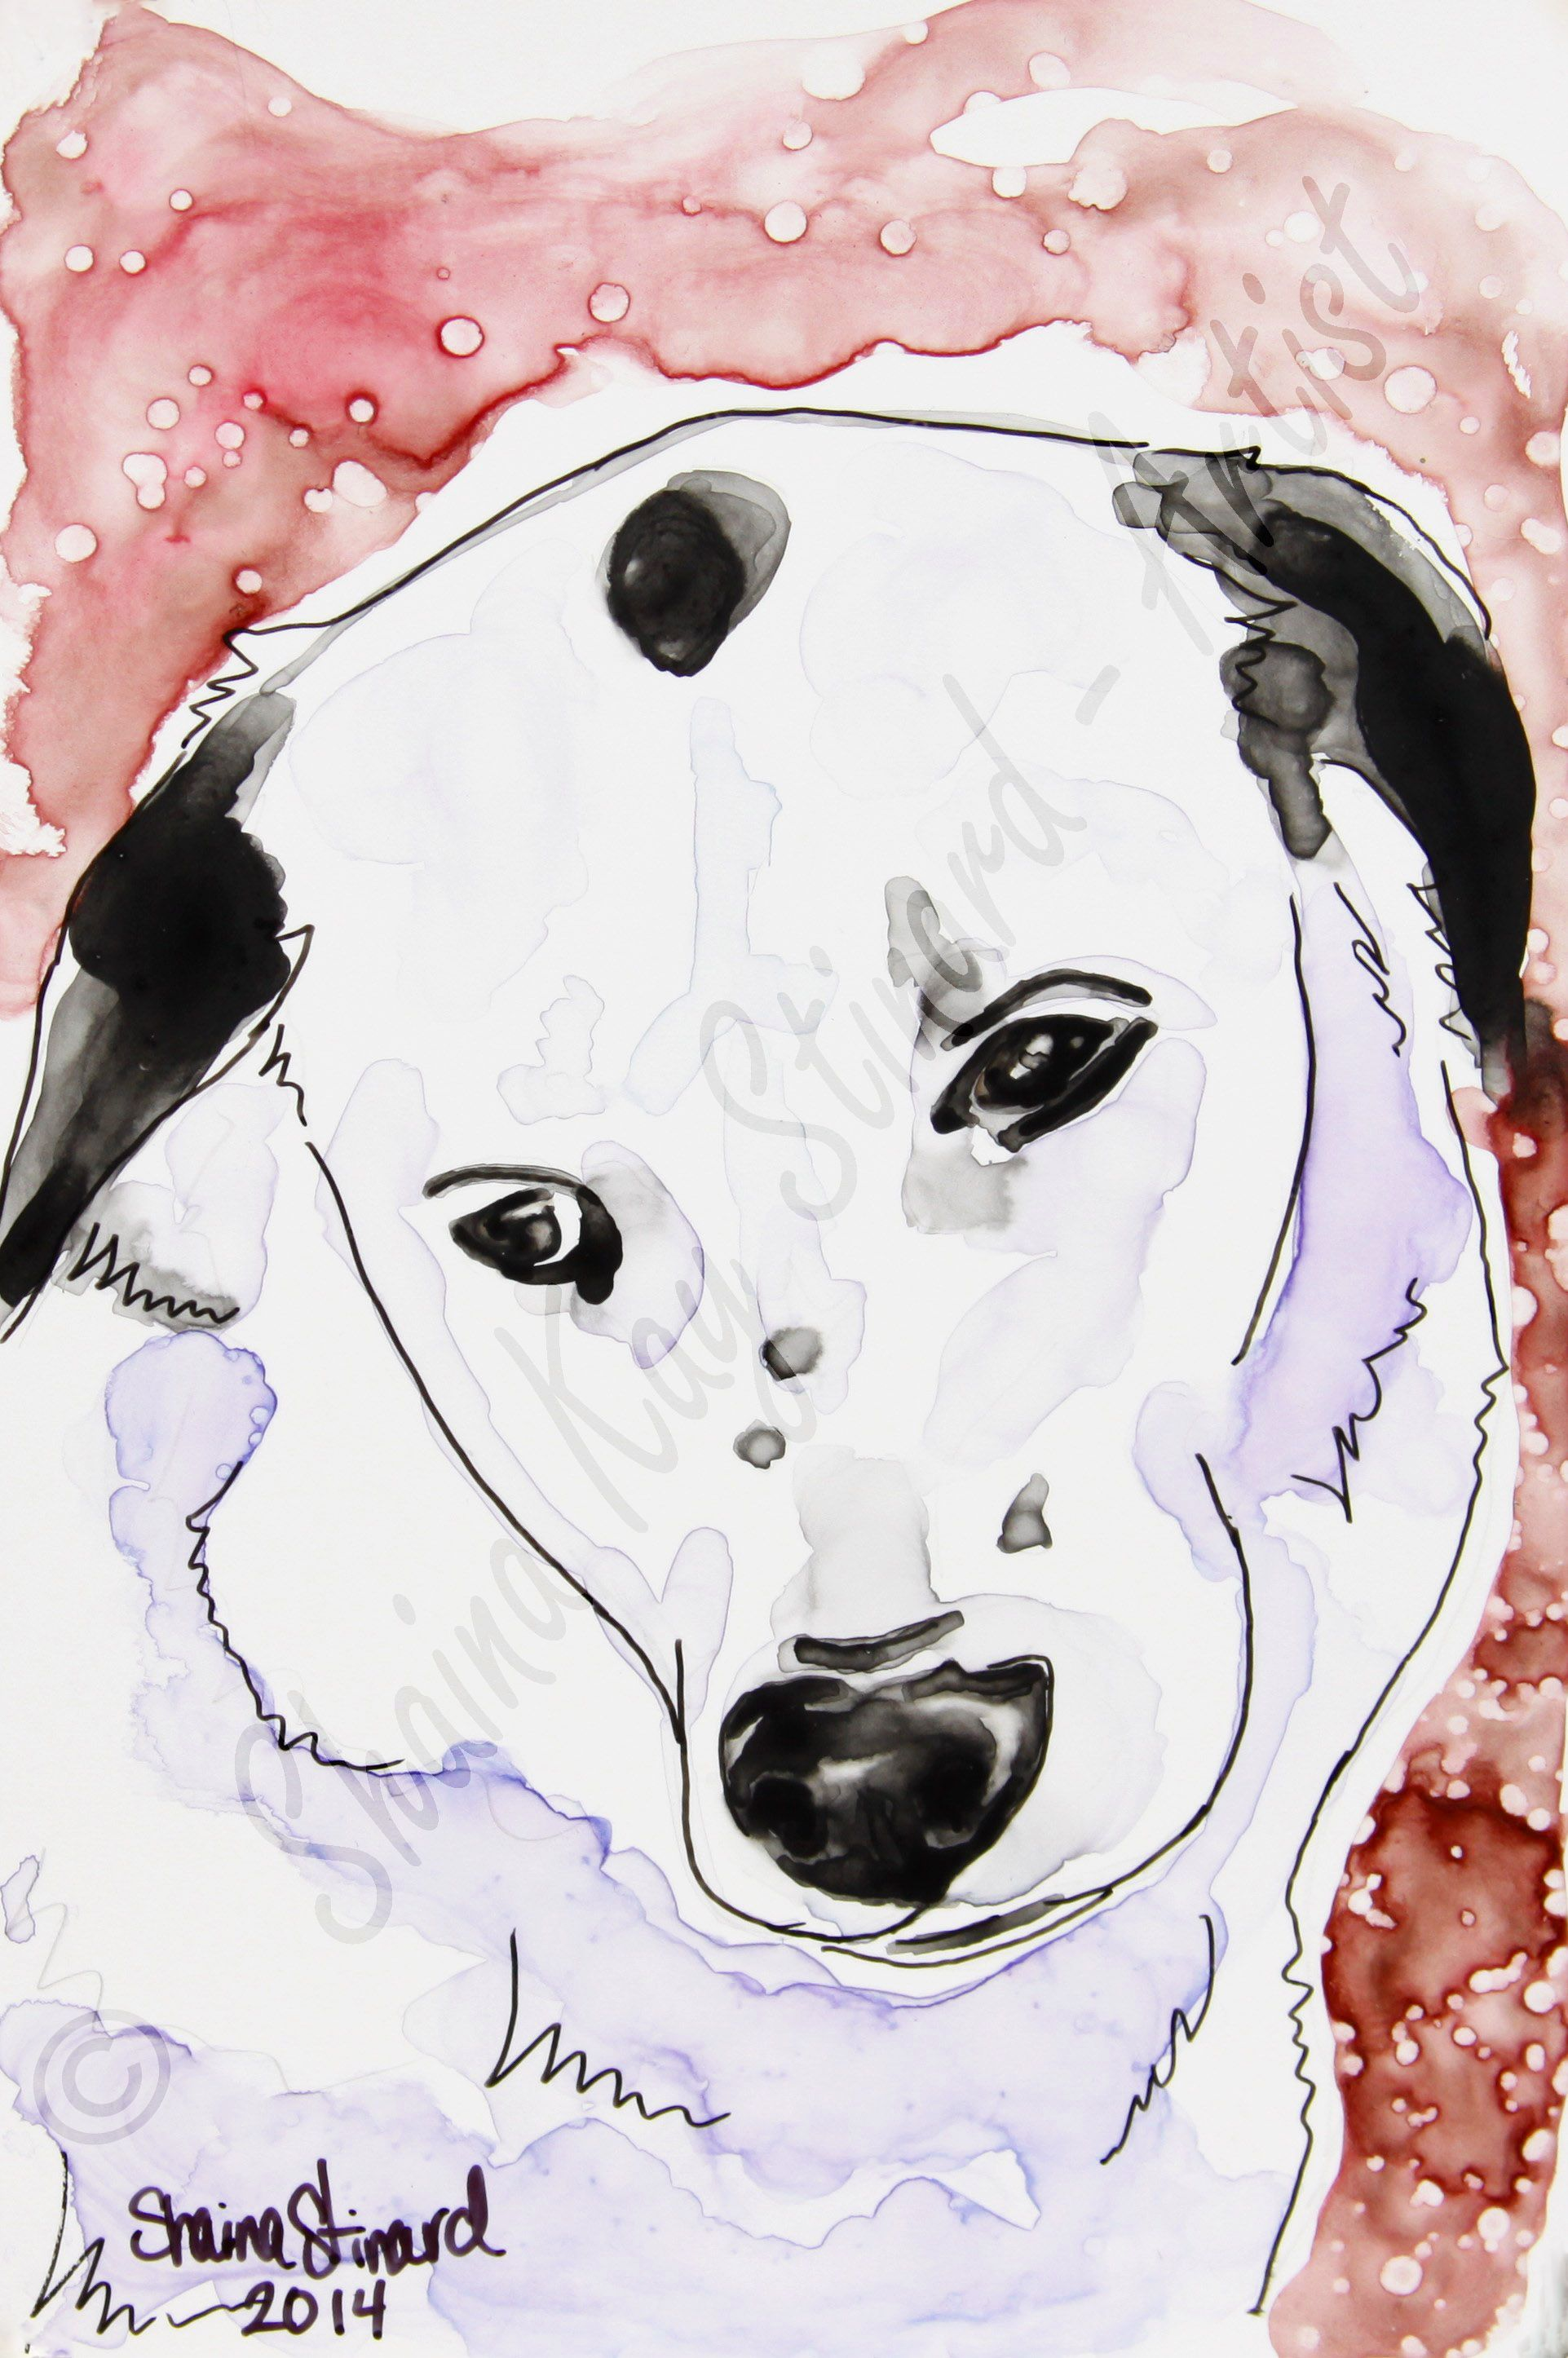 CUSTOM PET PORTRAITS / MIXED MEDIA SKETCHES ON YUPO PAPER by Shaina Kay Stinard - Artist.  Making your photos a work of art!   'Spot' - 4 x 6 mini portrait, watercolor with pen and ink on YUPO paper.  www.shainastinardartist.com